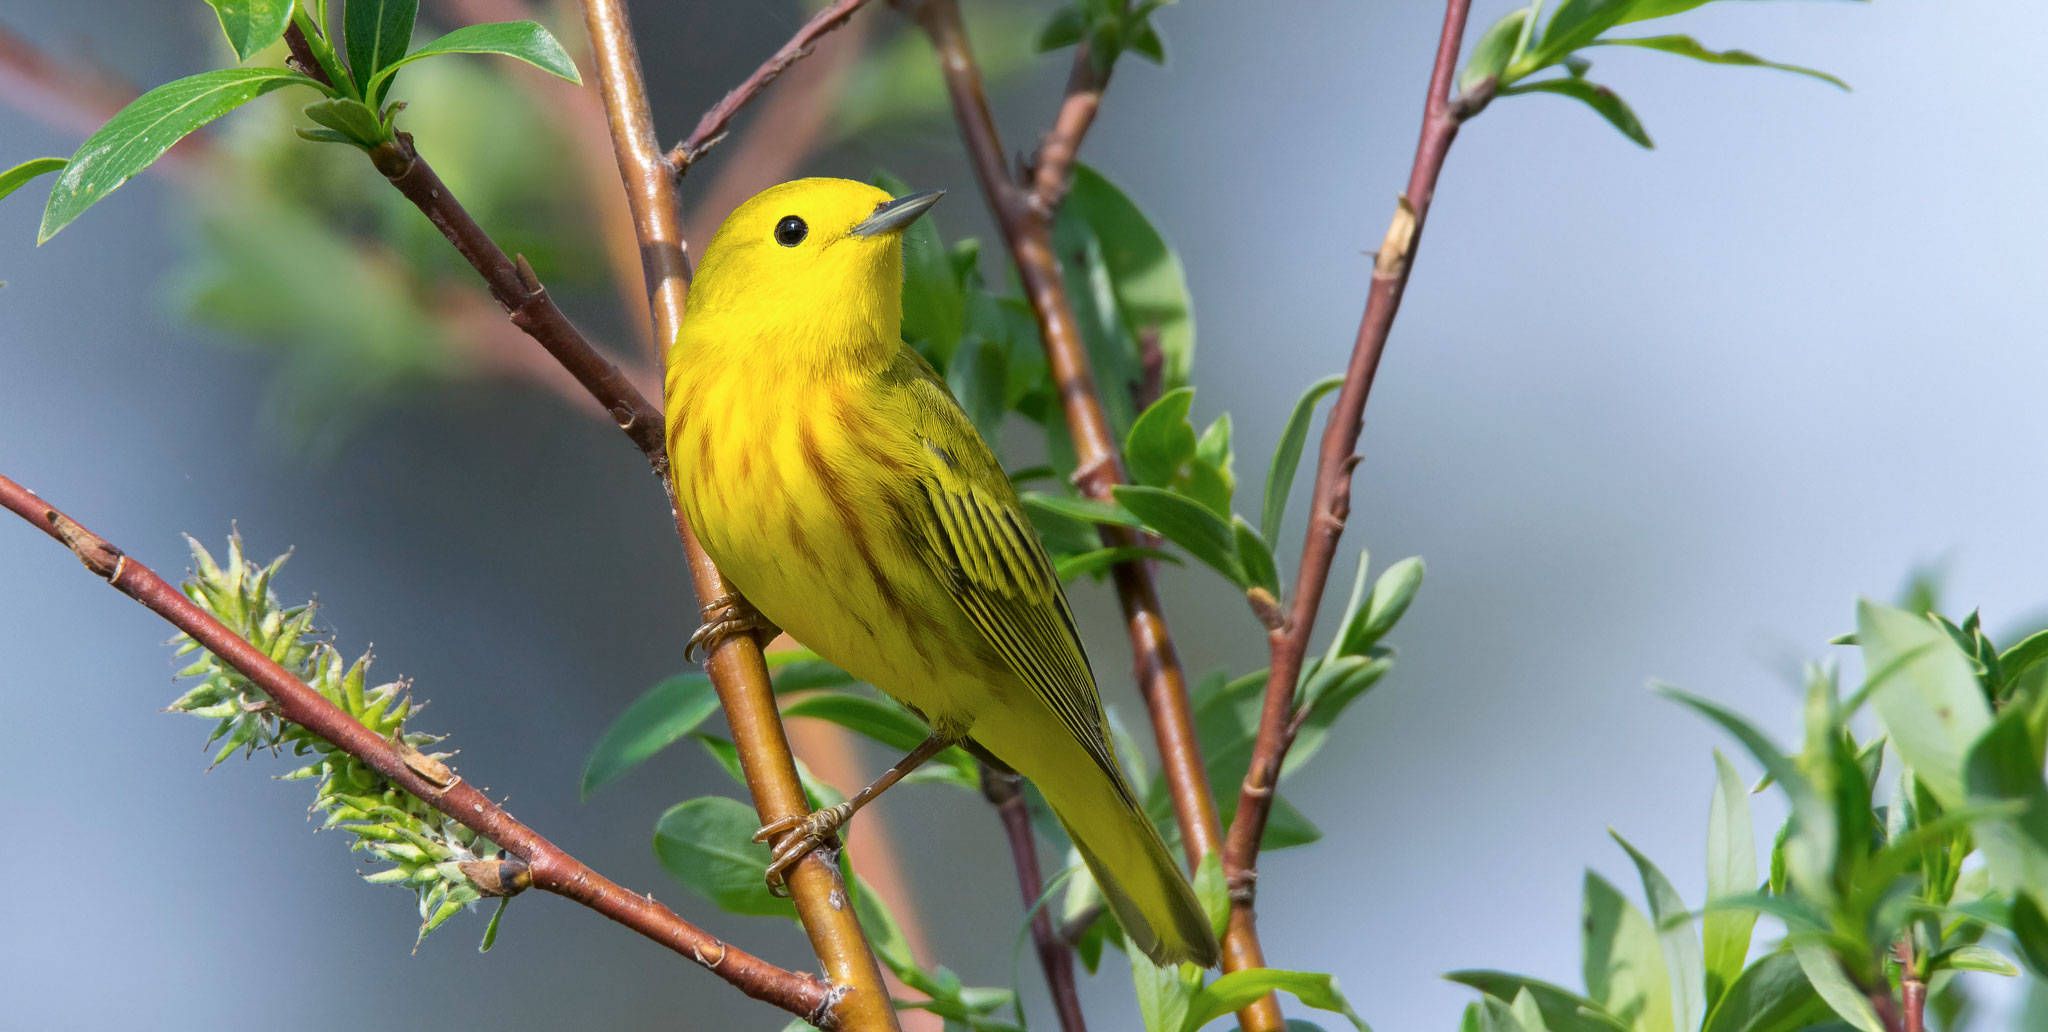 21 yellow warbler native willow tree keith williams flickr cc%28by nc%202.0%29%20%281%29